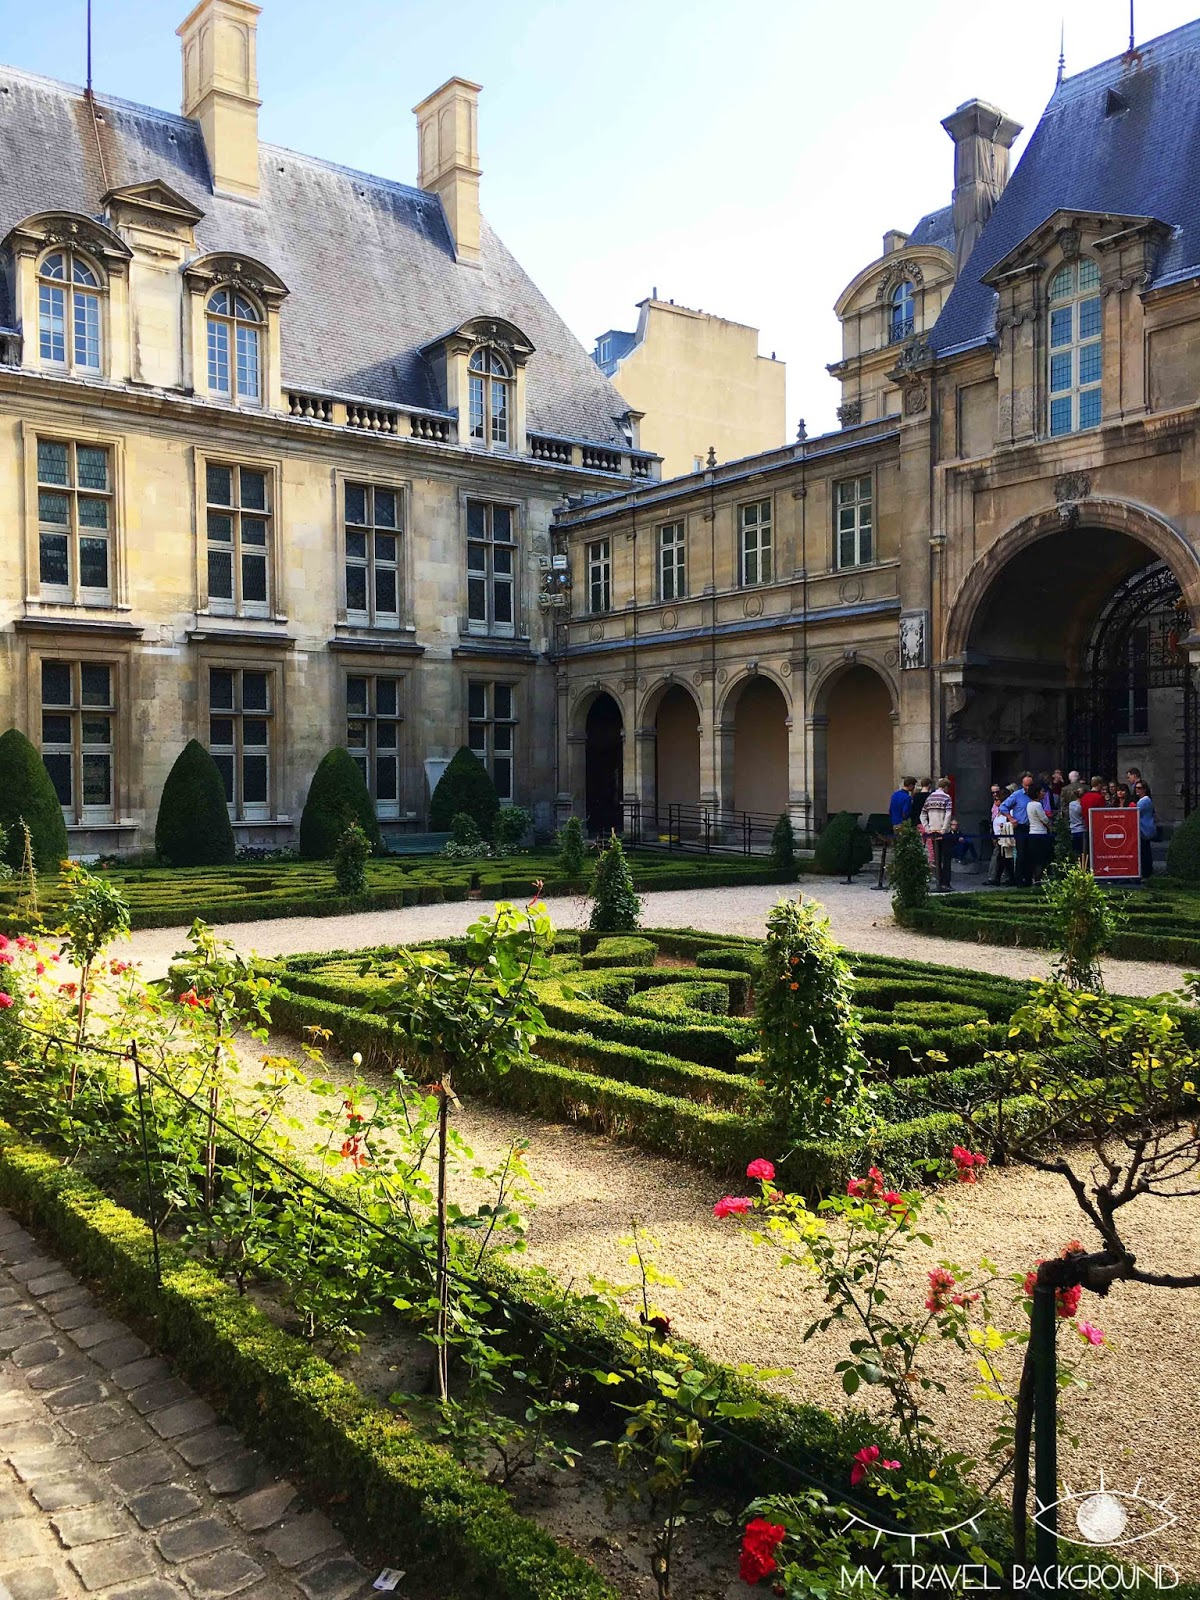 My Travel Background : #ParisPromenade, Le Marais - Musée Carnavalet